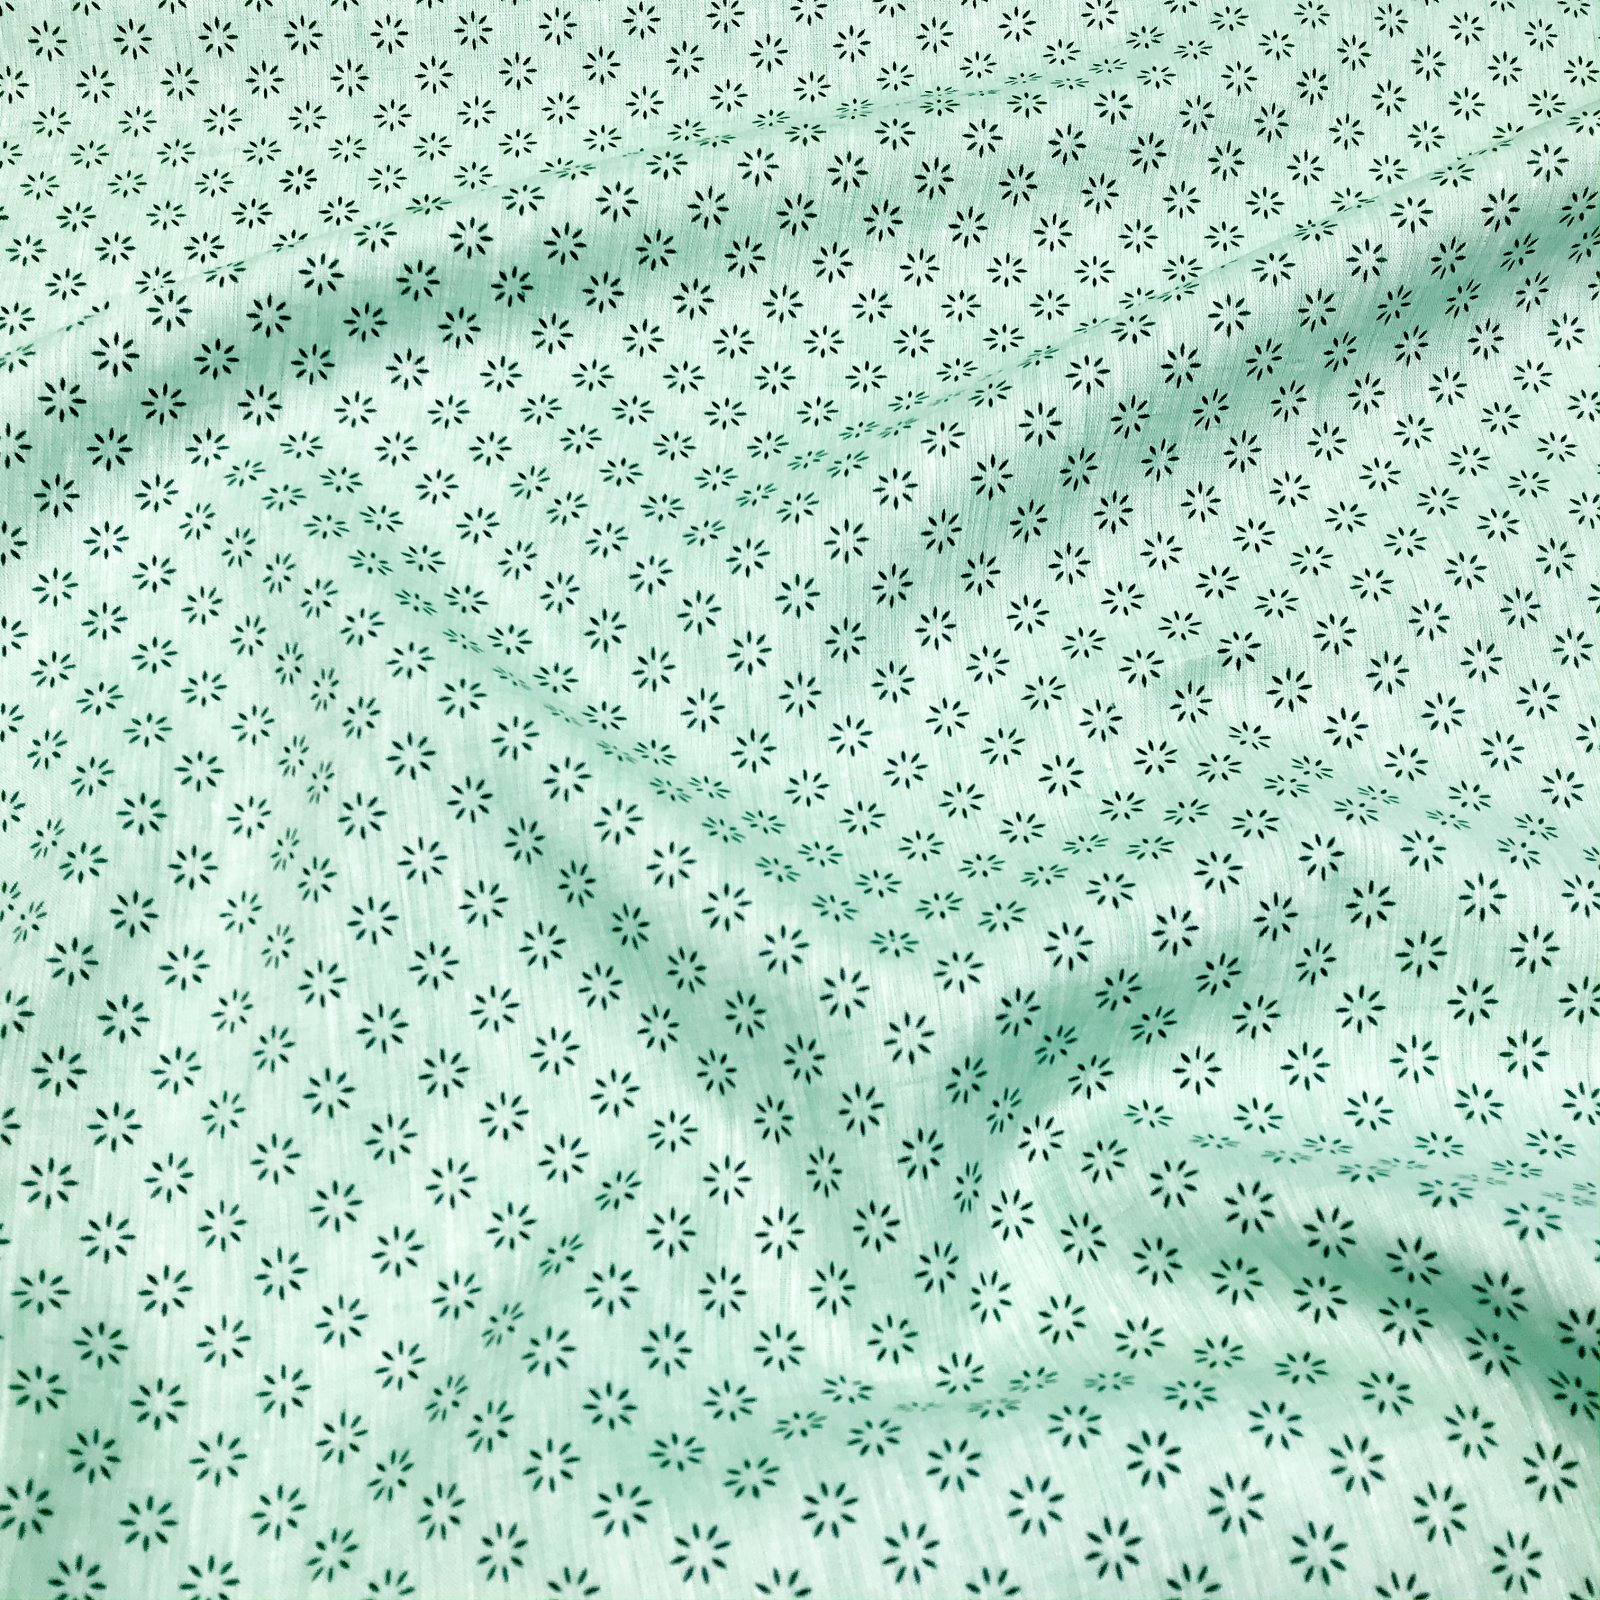 Linen - European Linen in Mint Daisy Print